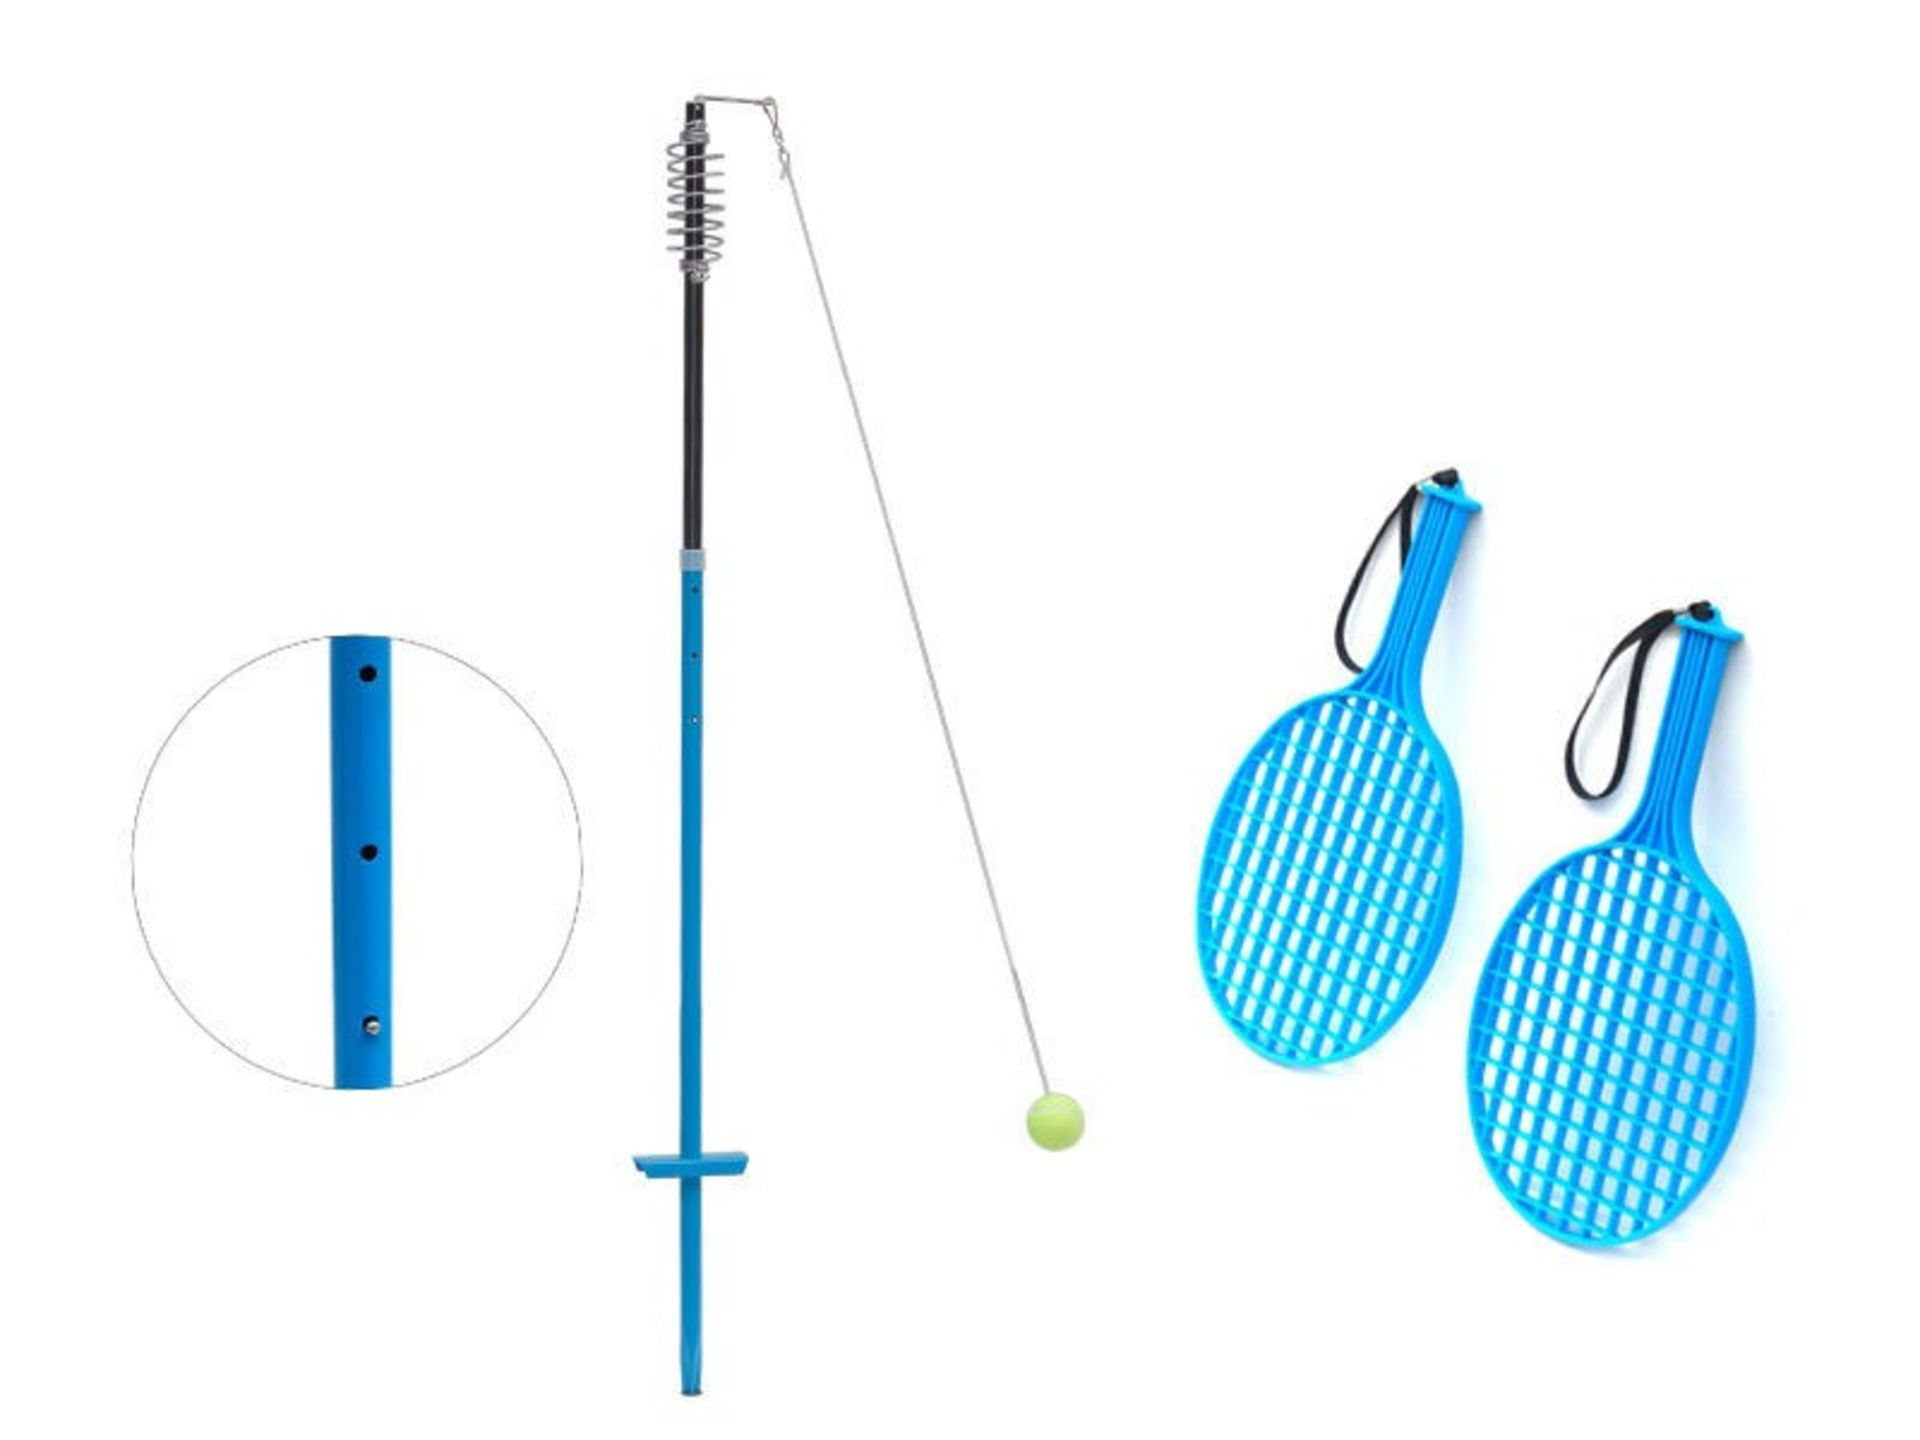 Lot 12837 - V Brand New Tennis Trainer Set w/Ball and 2 bats in carry bag